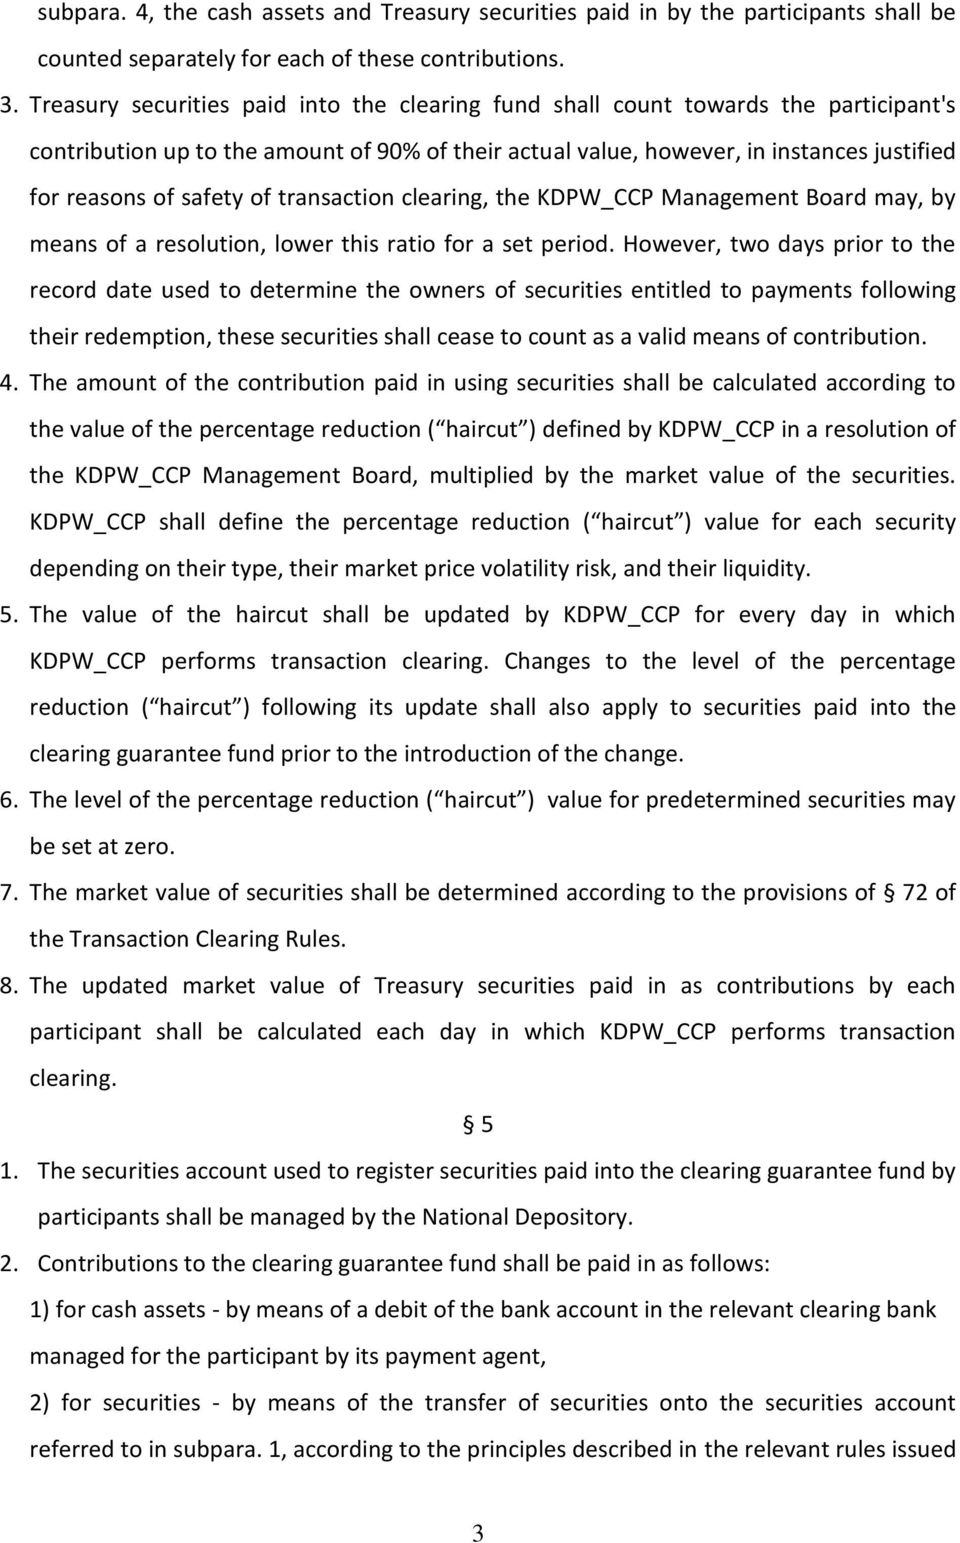 of transaction clearing, the KDPW_CCP Management Board may, by means of a resolution, lower this ratio for a set period.